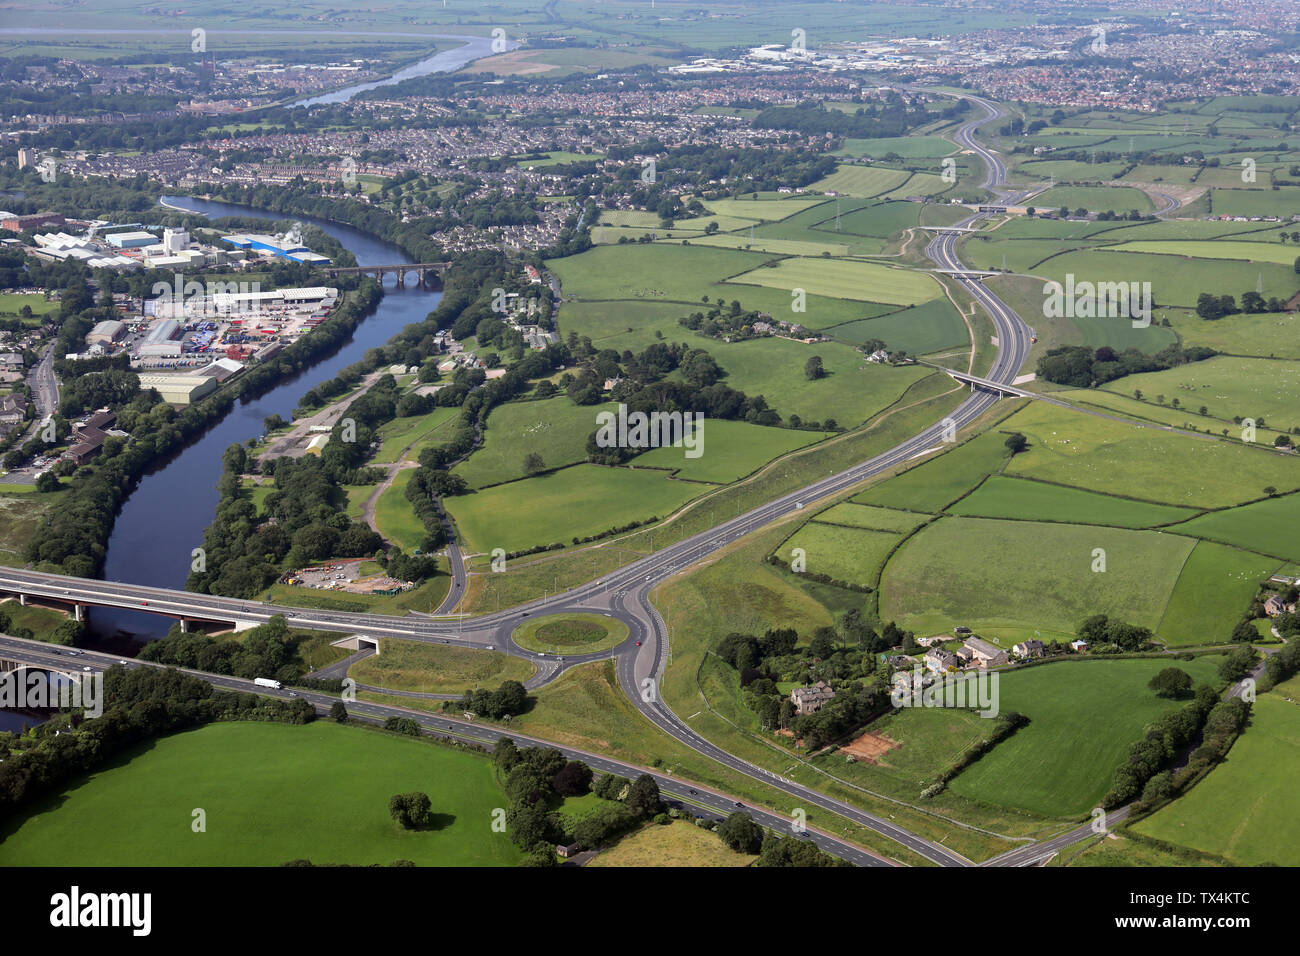 aerial view of the Lancaster Northern Bypass A683, Heysham to M6 link road, Lancashire Stock Photo